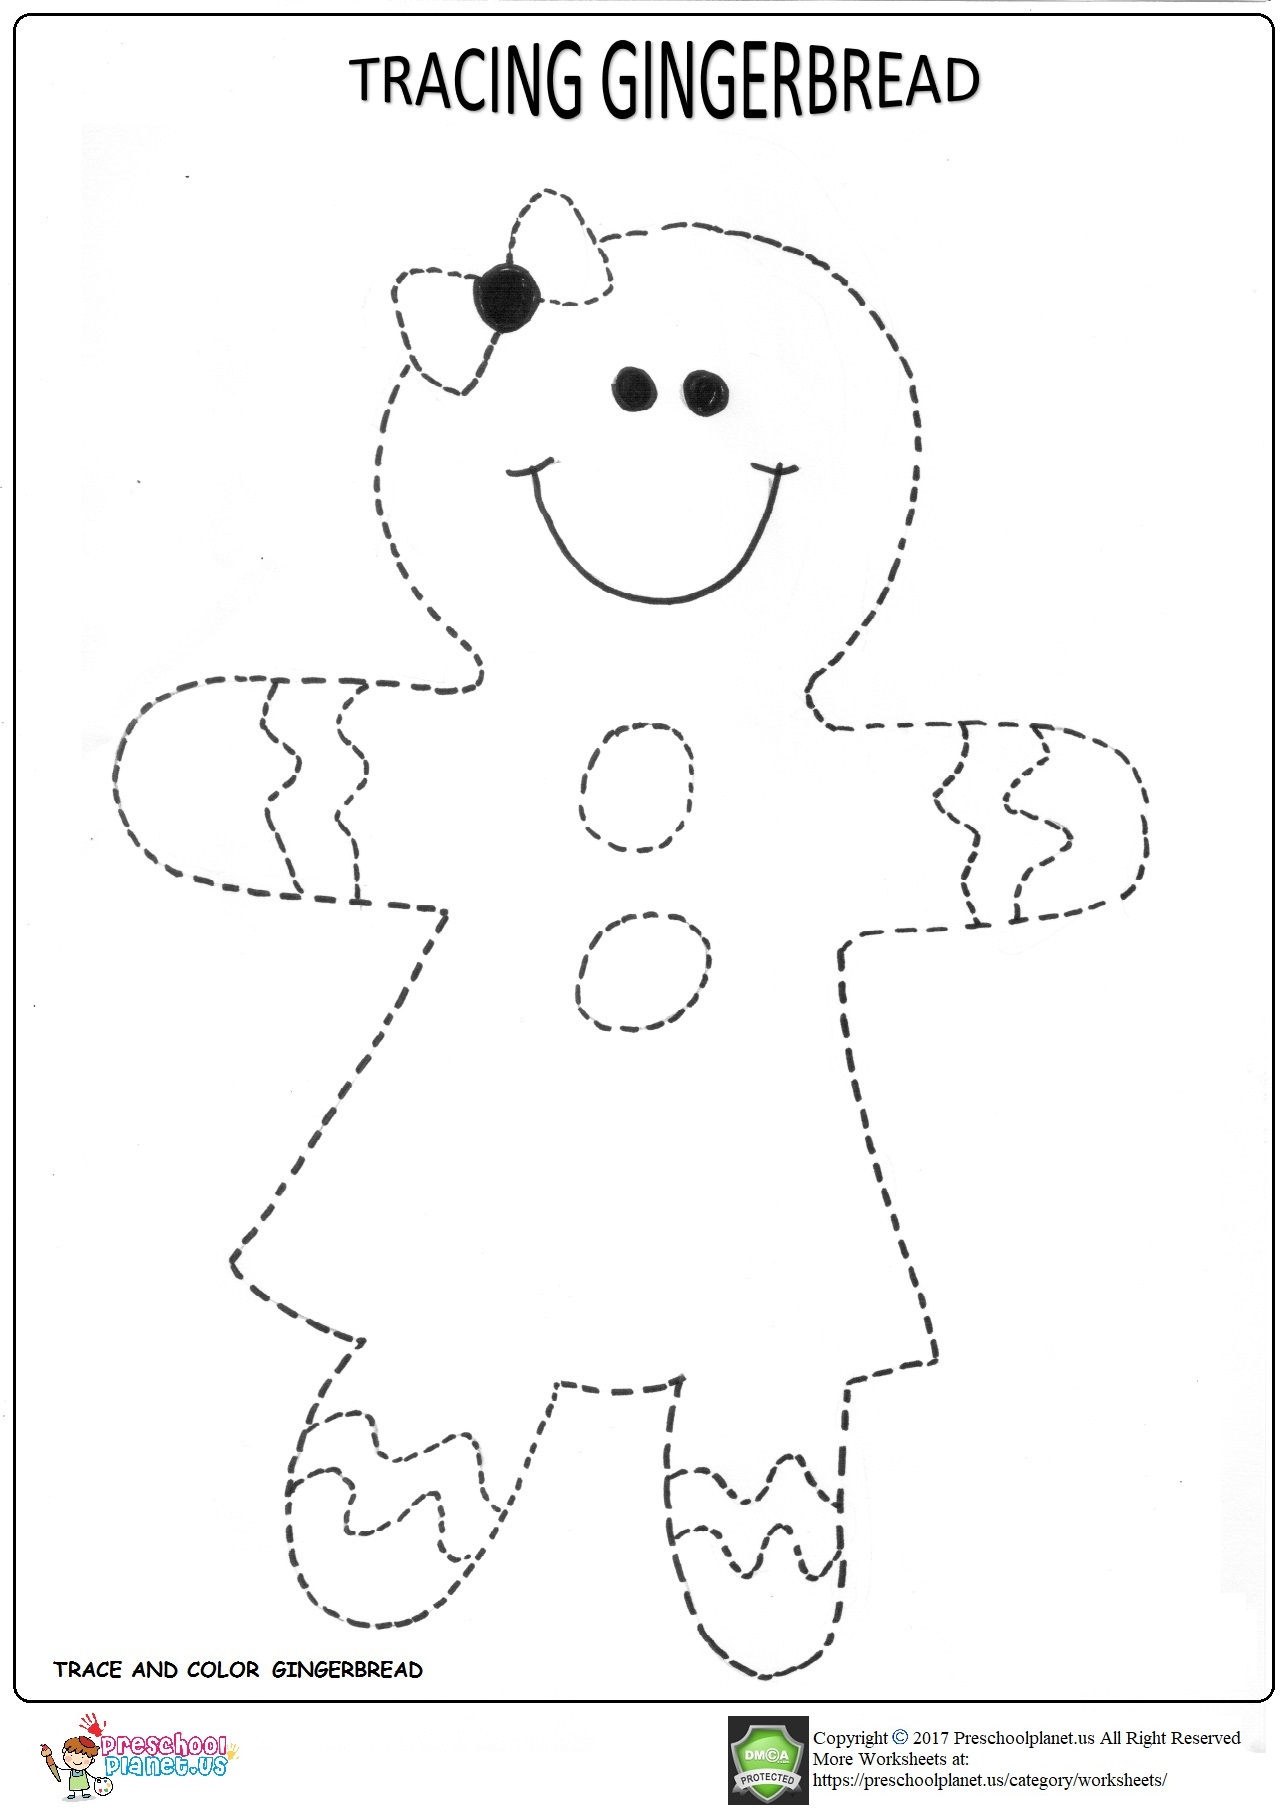 Trace Gingerbread Worksheet For Kindergarten Preschoolplanet